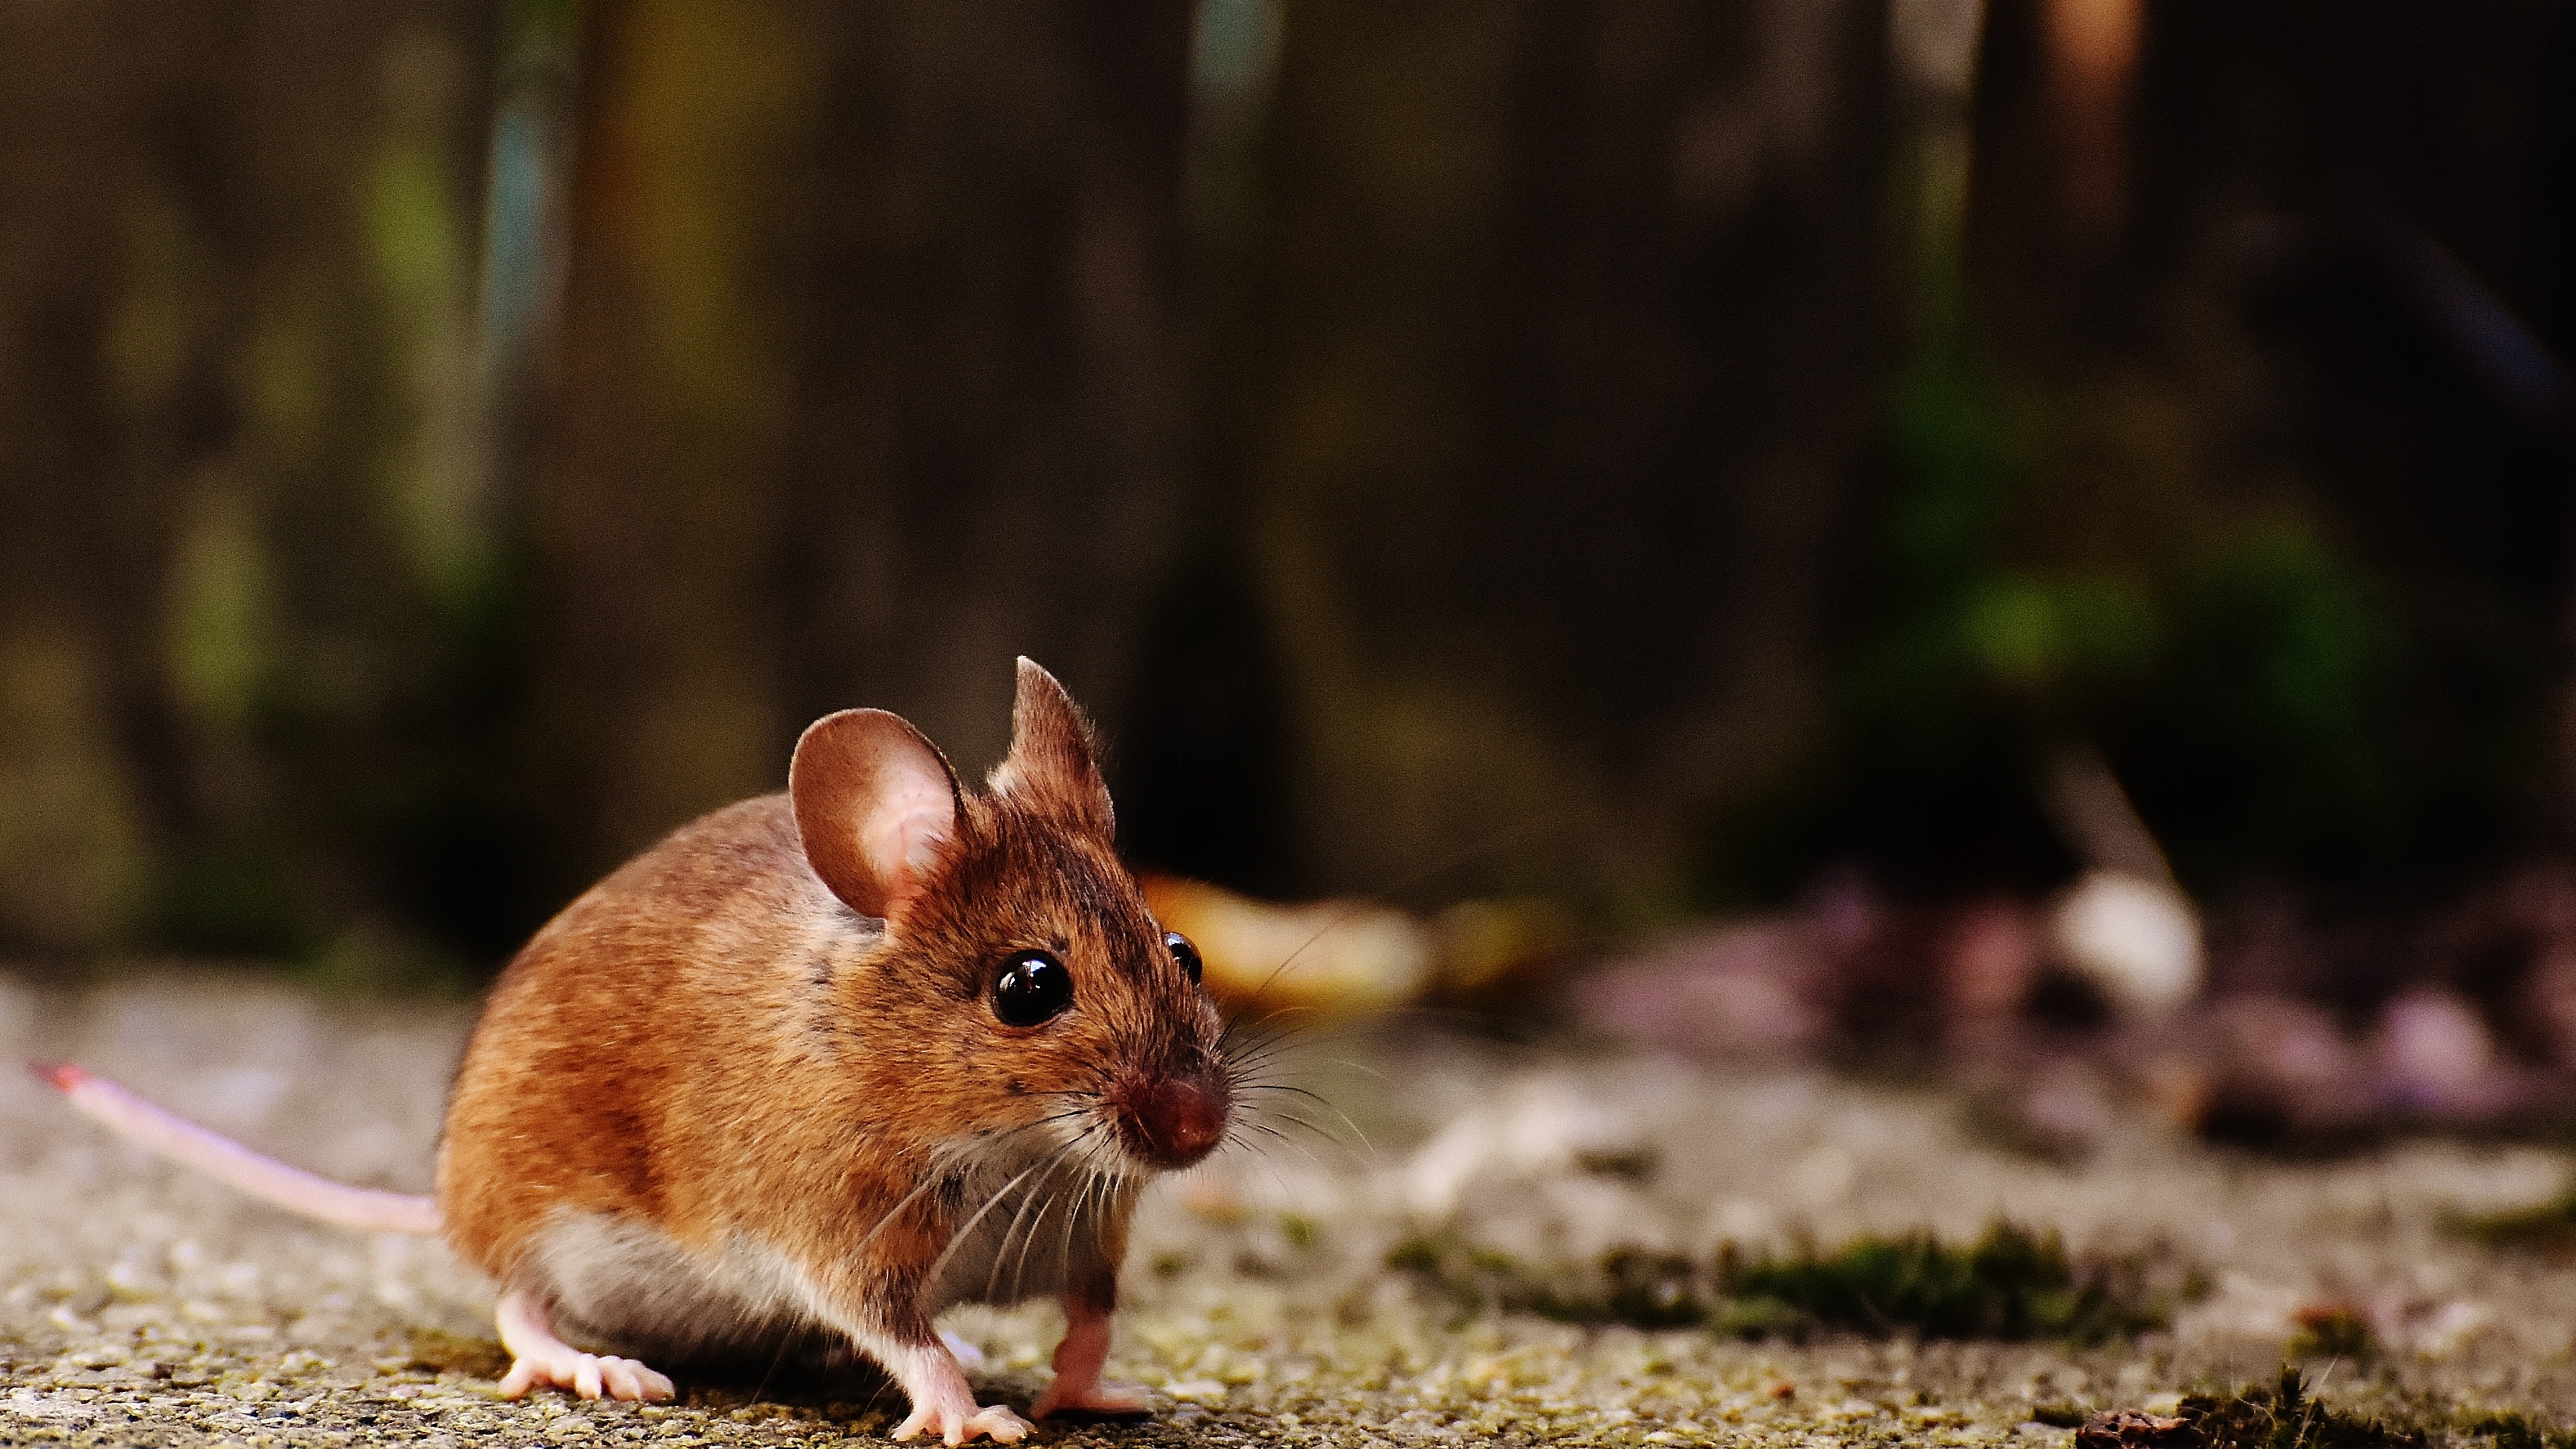 mouse 4k 1542238391 - Mouse 4k - mouse wallpapers, hd-wallpapers, animals wallpapers, 4k-wallpapers